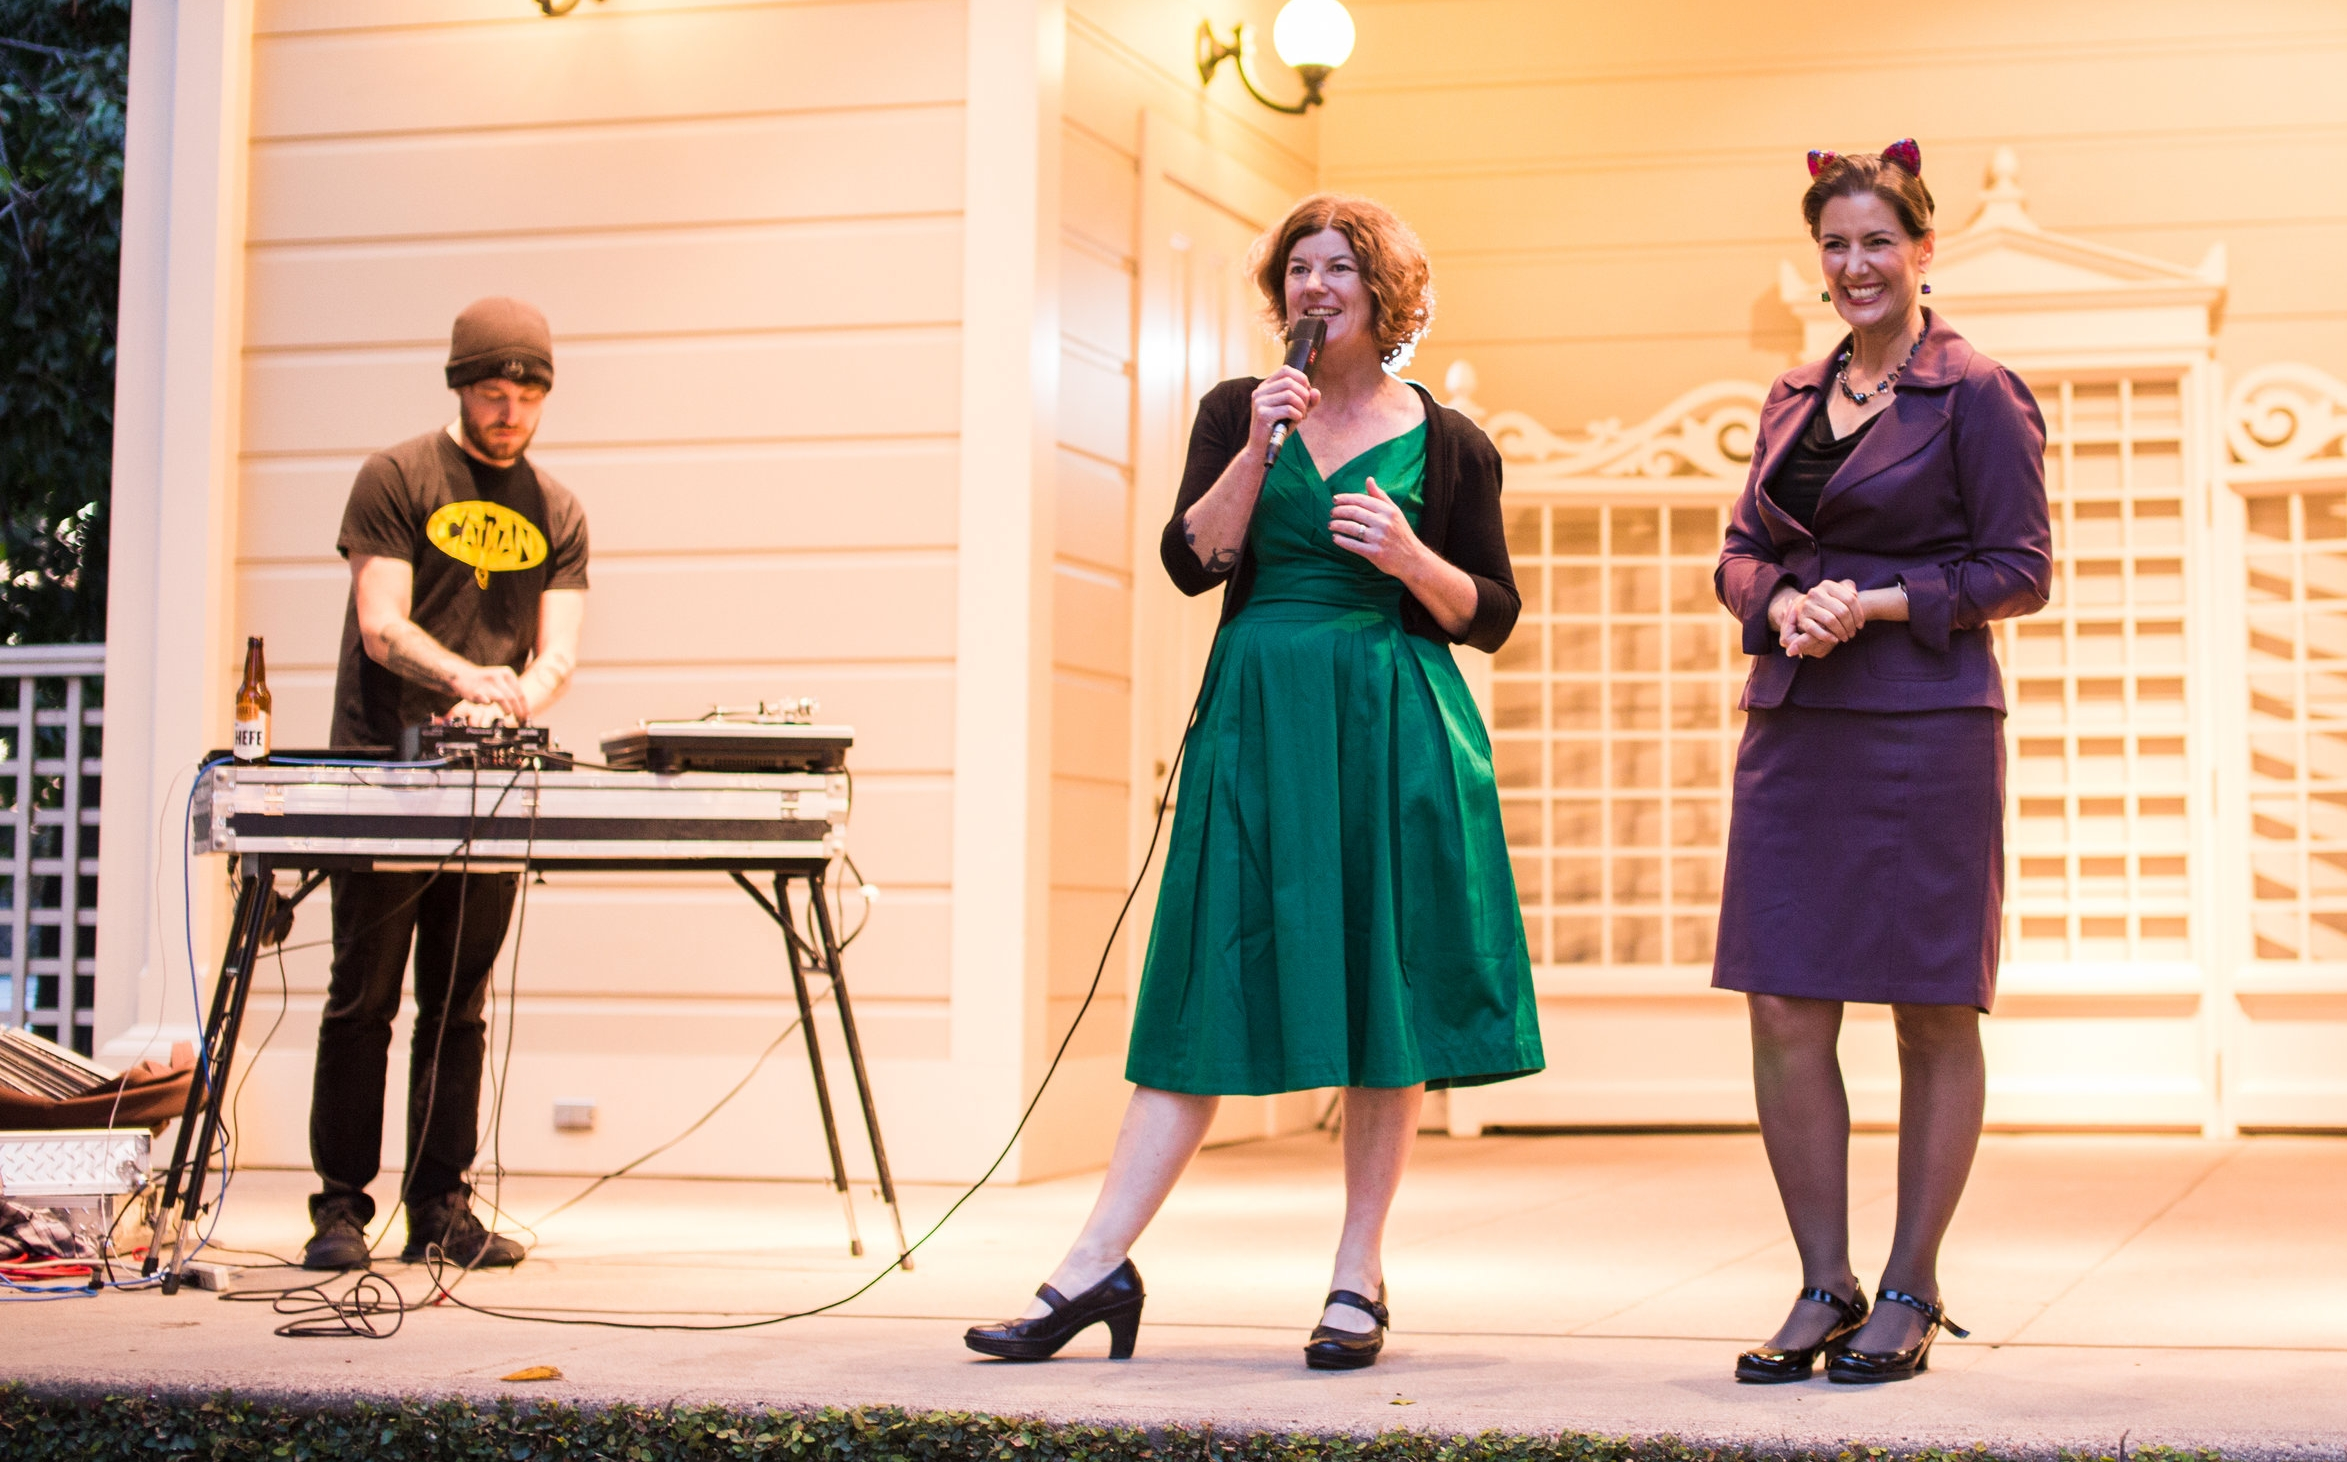 From left to right: DJ Adam Myatt (AKA The Cat Man of West Oakland), Cat Town Founder and Executive Director, Ann Dunn, and Oakland Mayor Libby Schaaf. Photo by Nautilus Lens Photography.